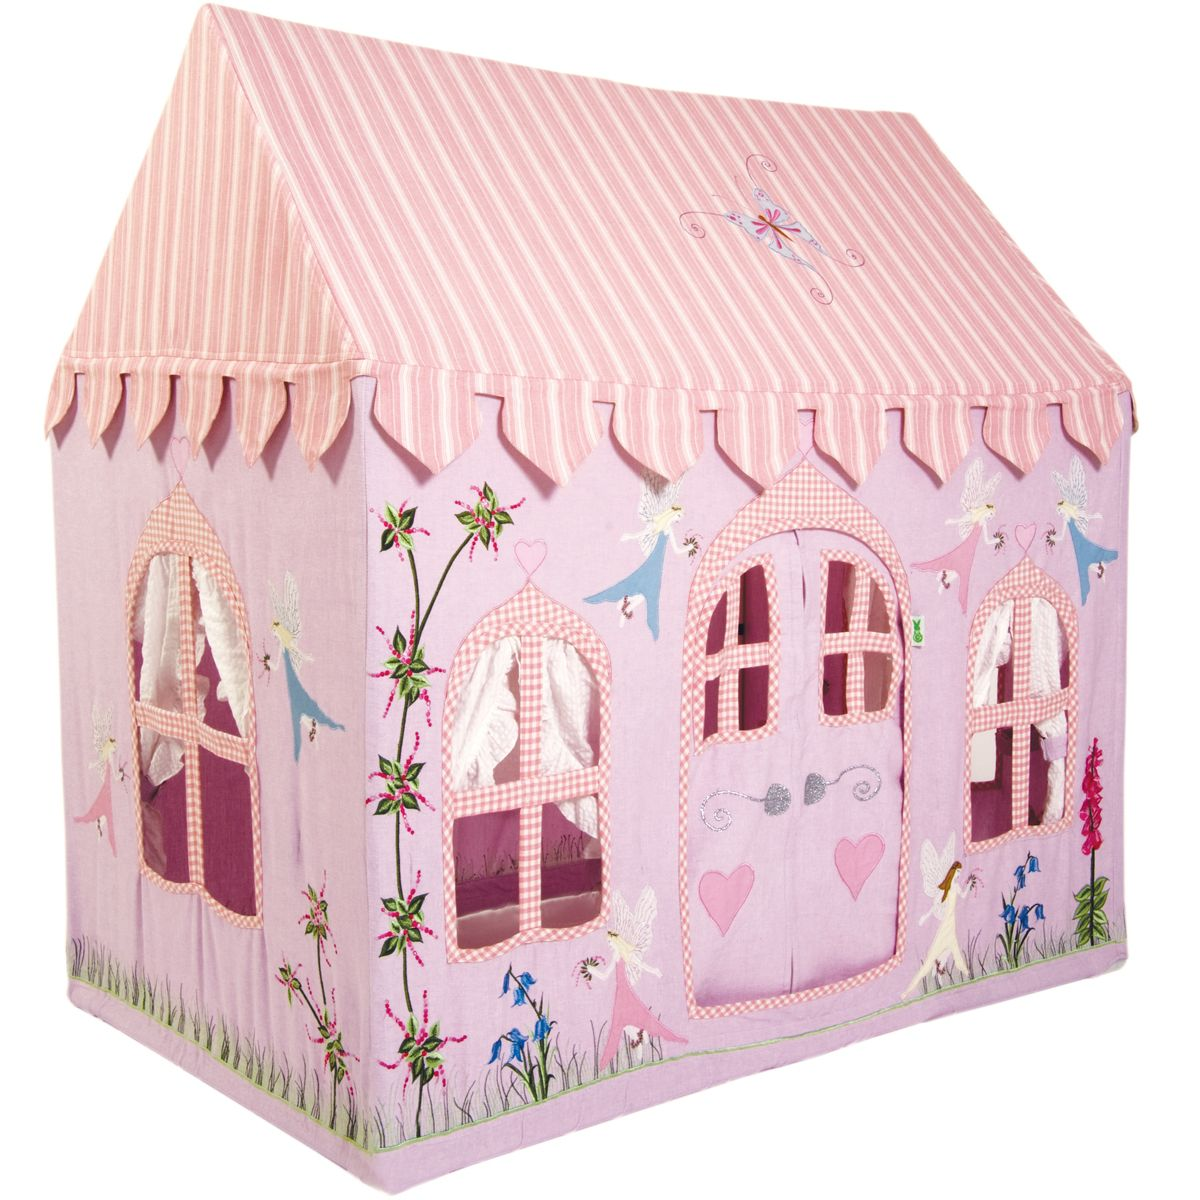 playhouse for toddlers indoors